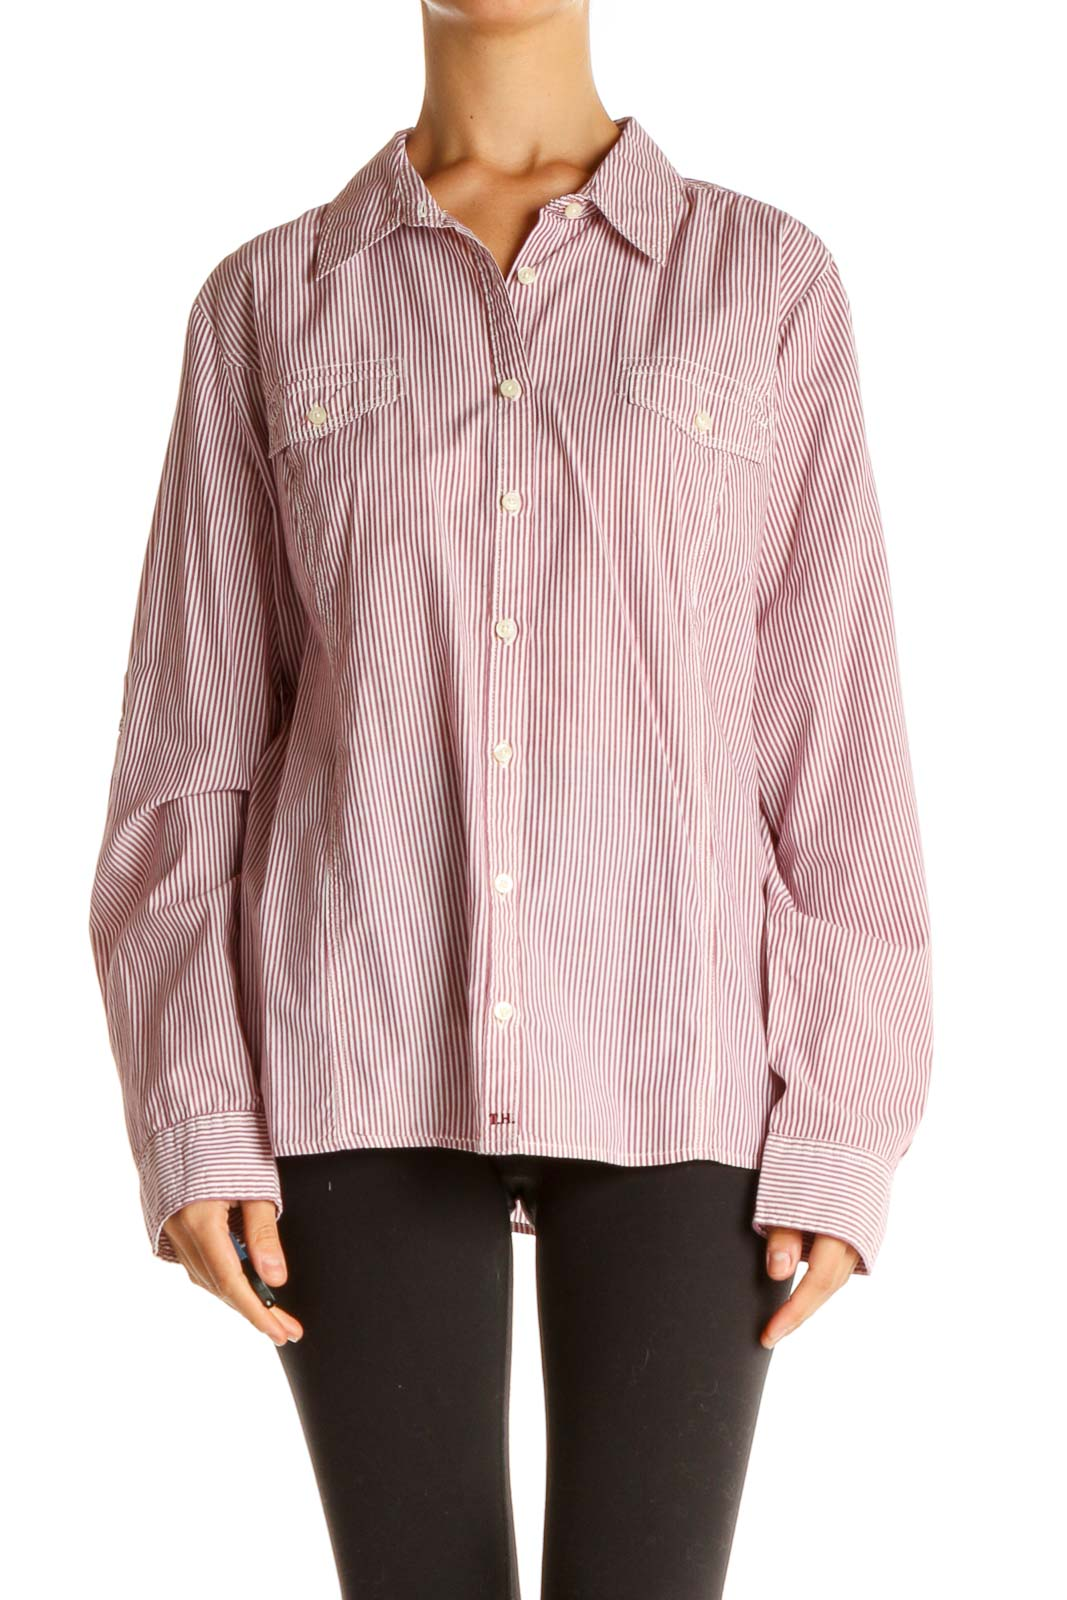 Pink Striped Formal Shirt Front